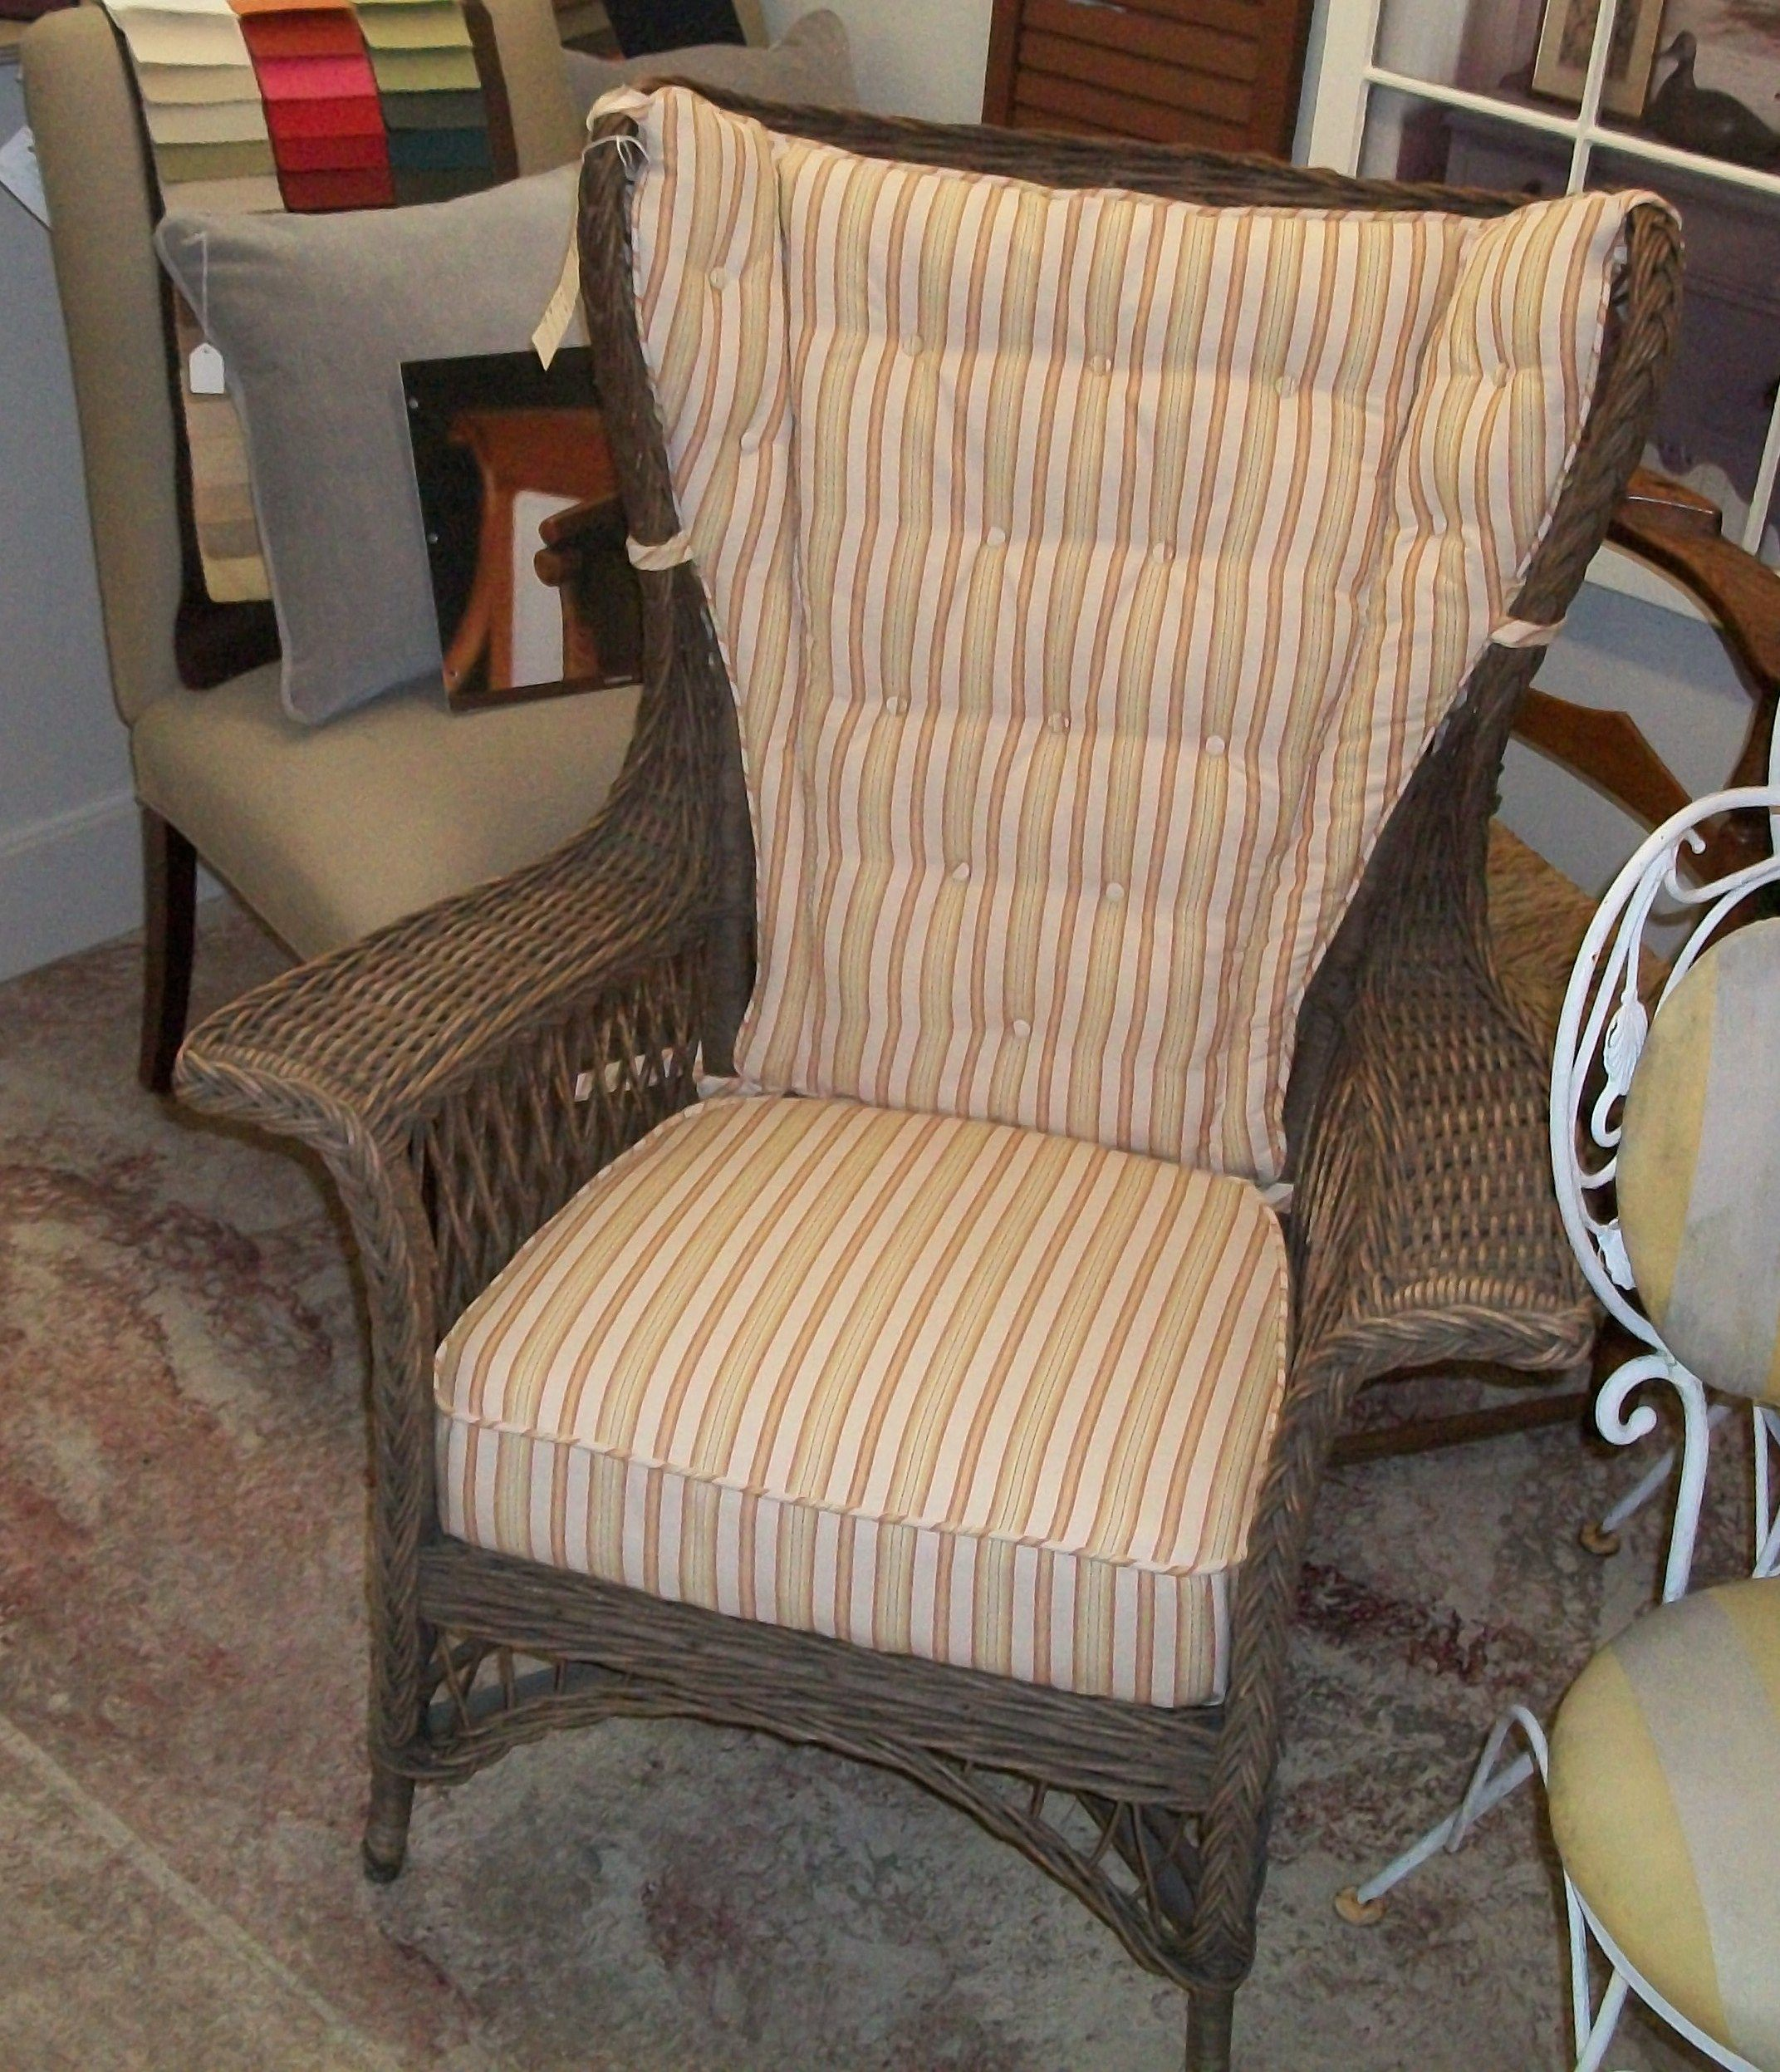 Superb New Cushions For This Wicker Chair Made At Ravenwood Furniture.